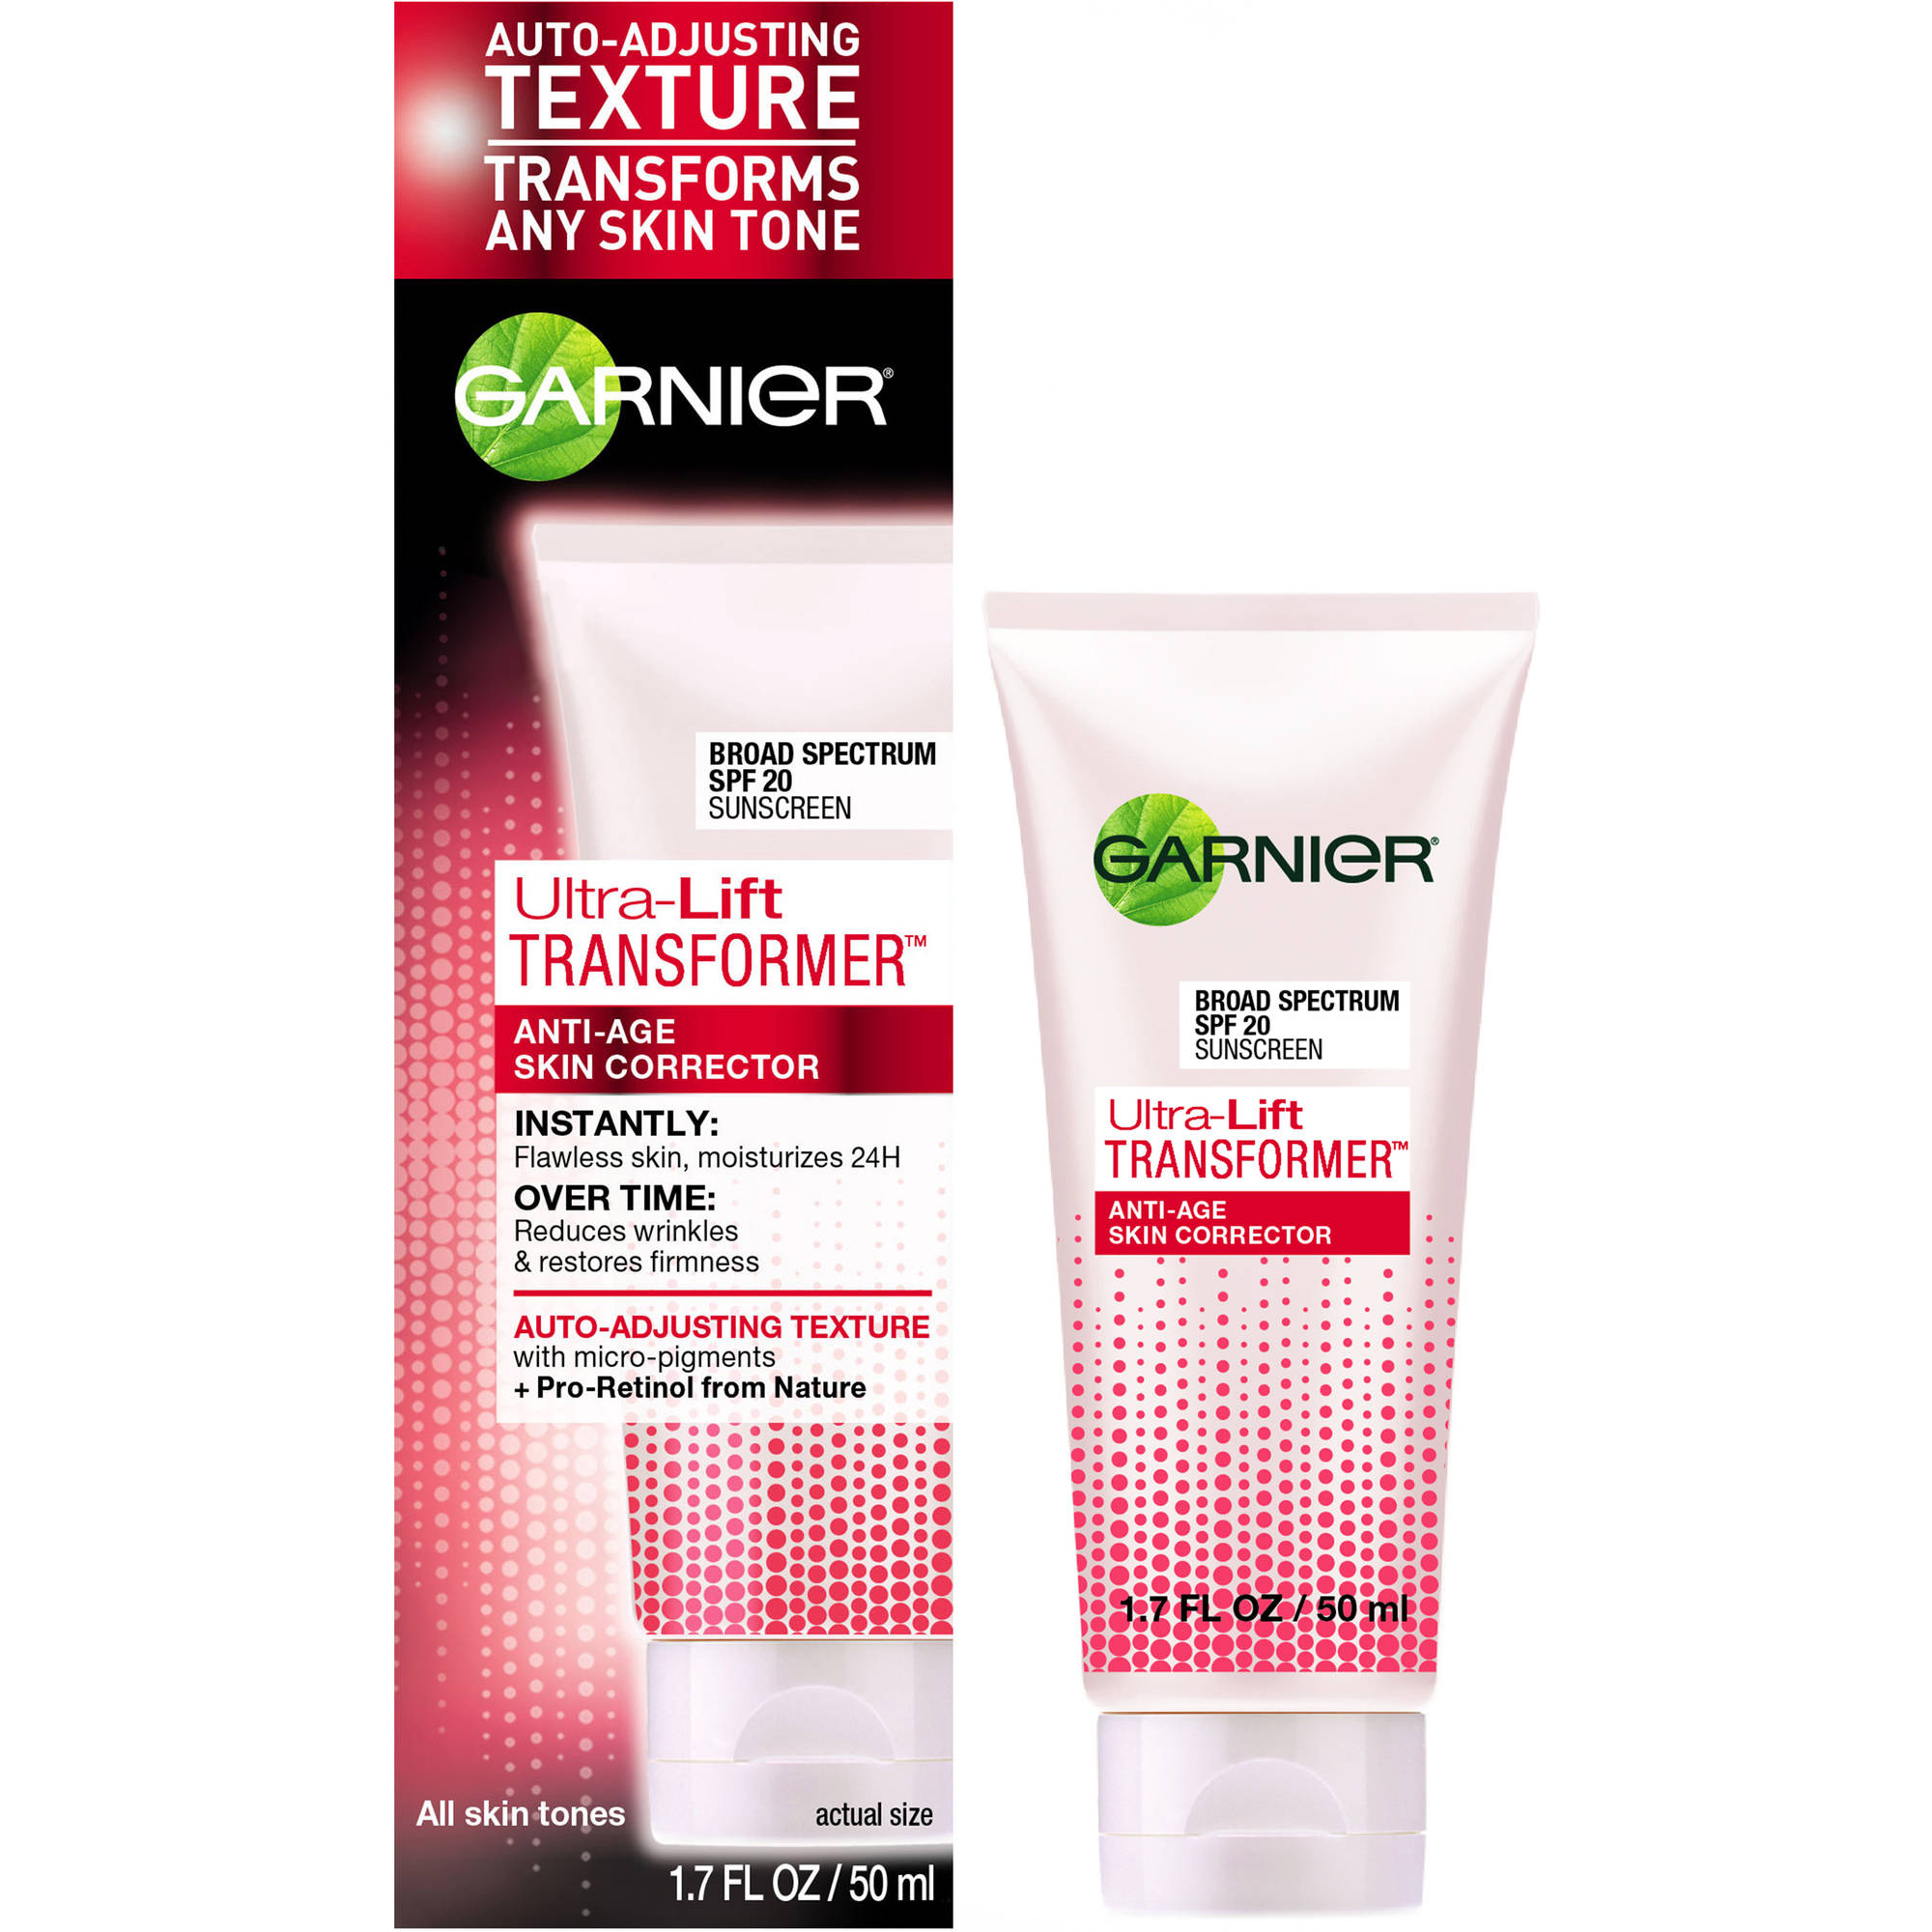 Garnier Ultra-Lift Transformer Anti-Age Skin Corrector, 1.7 fl oz